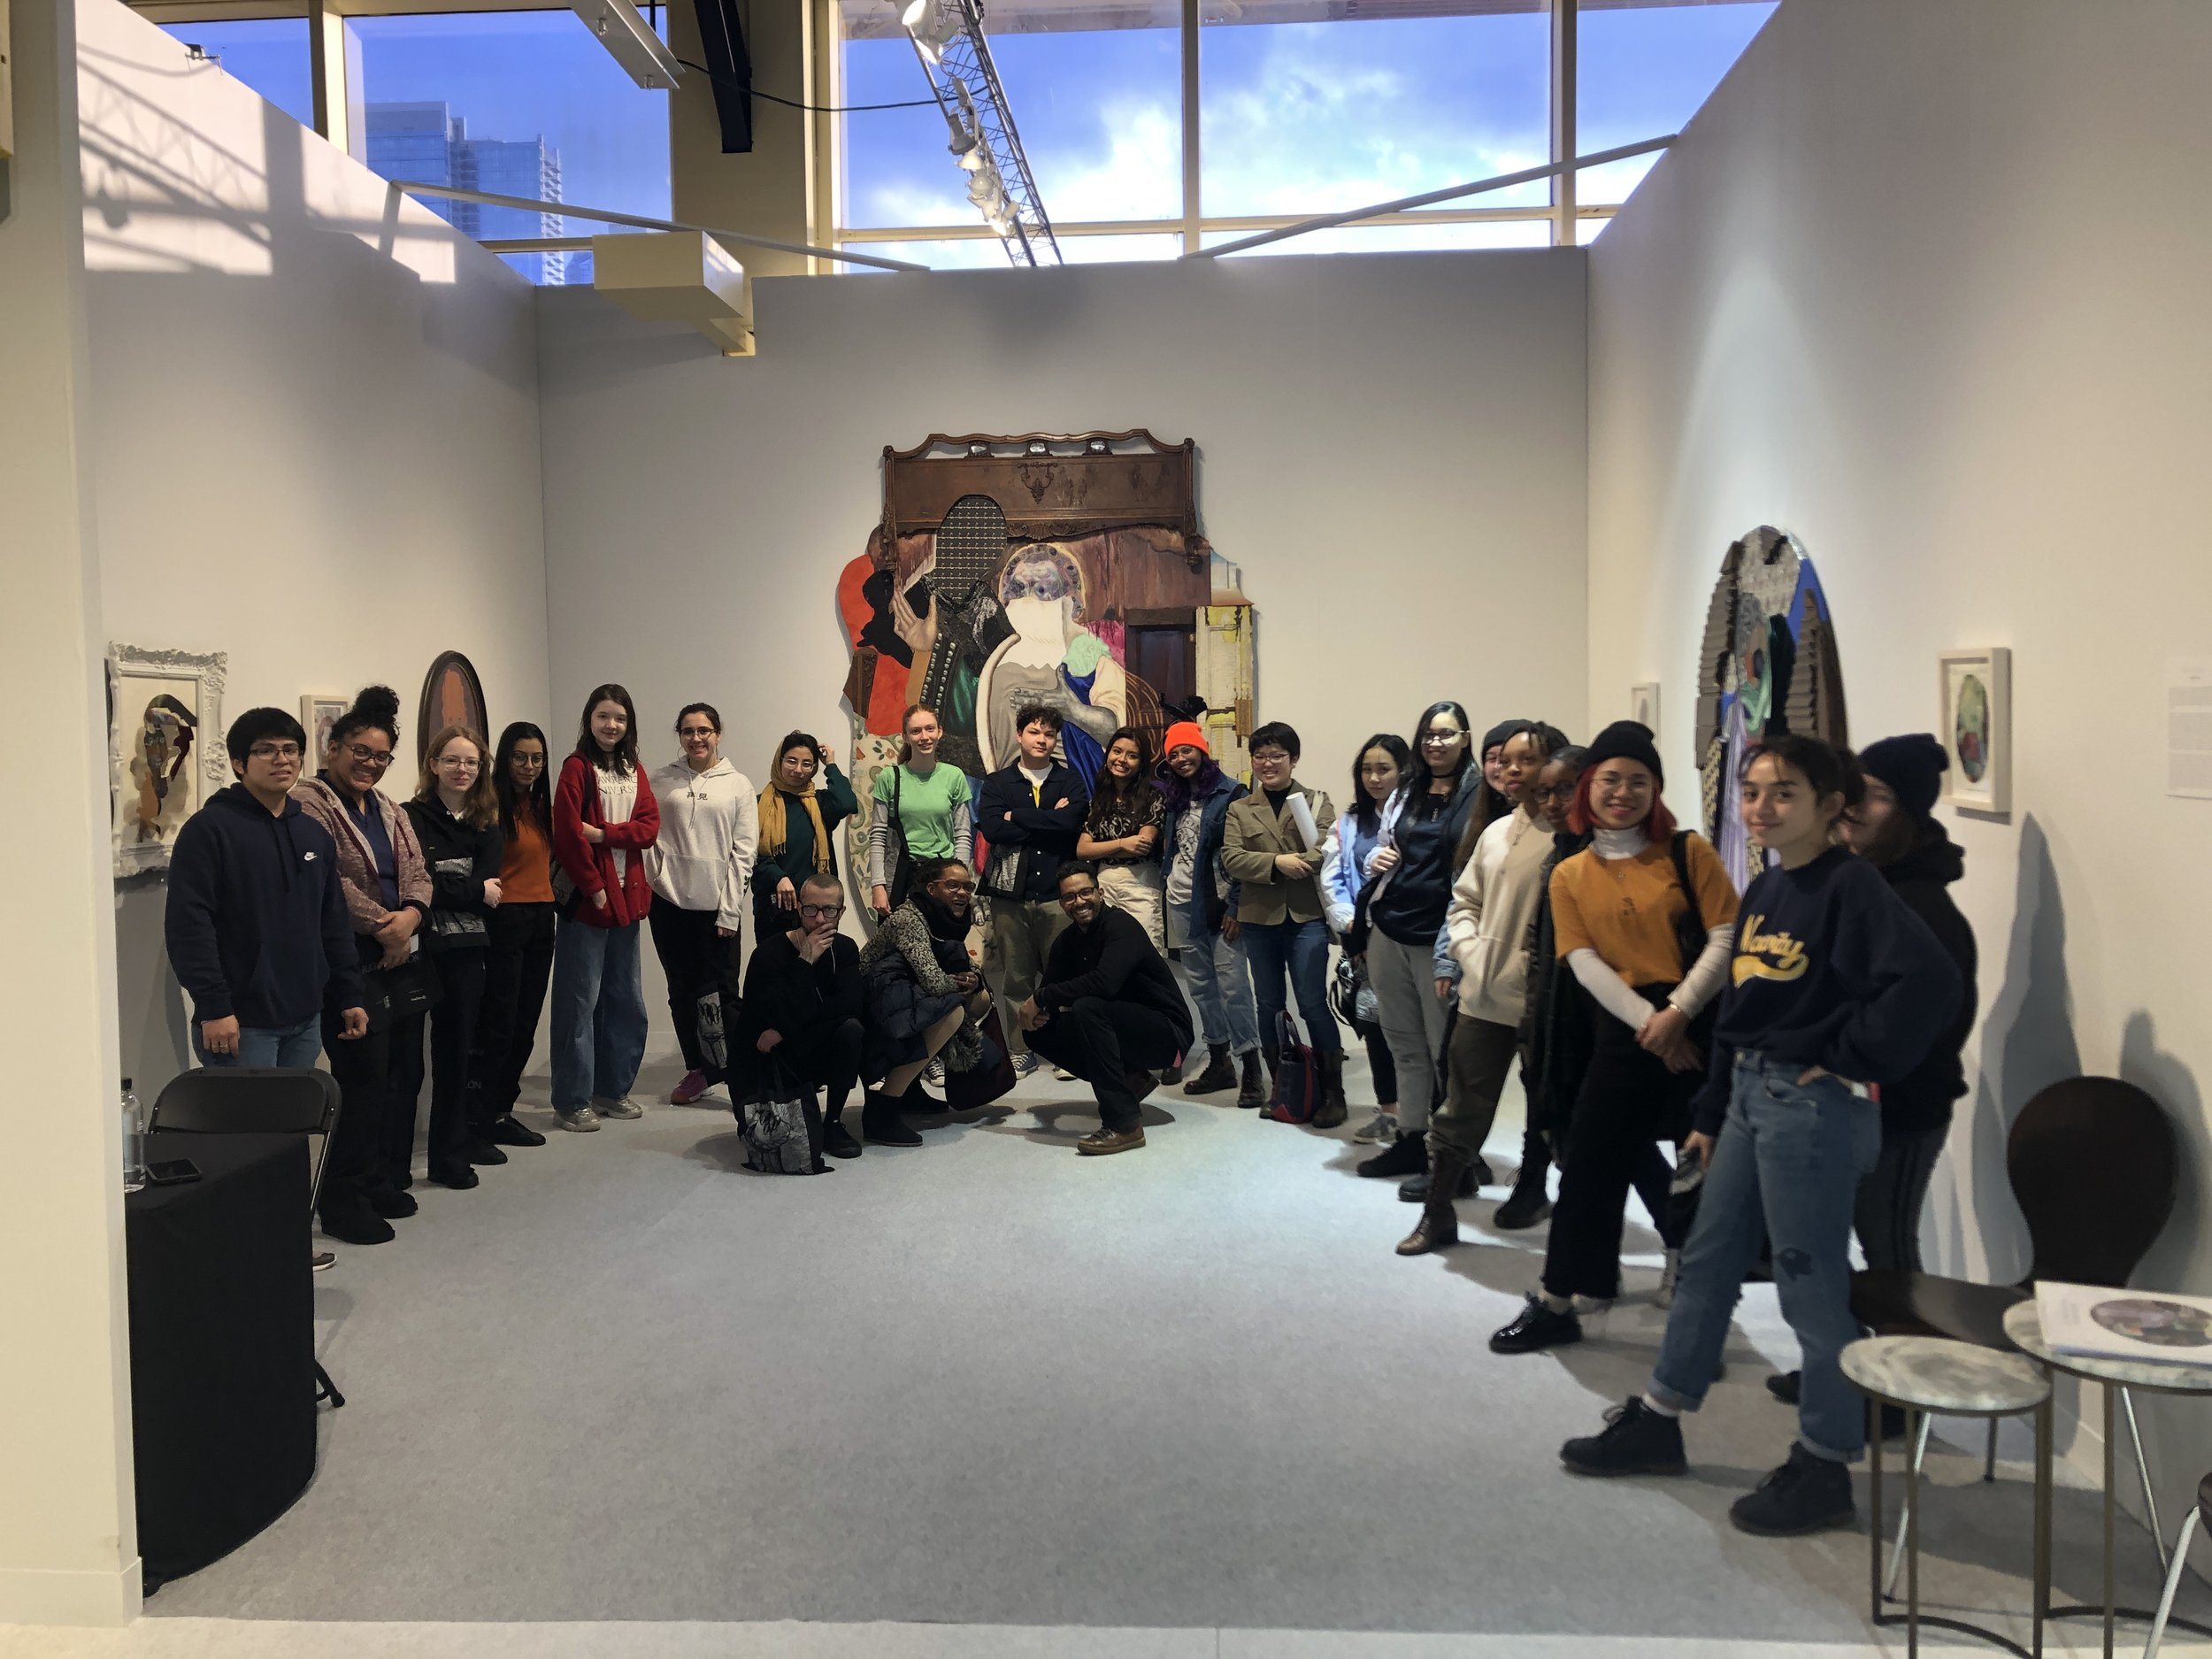 Brian Fee leads the CUE Teen Collective on a tour of The Armory Show, where the teens got the chance to speak to artists and gallerists and explore the art fair.